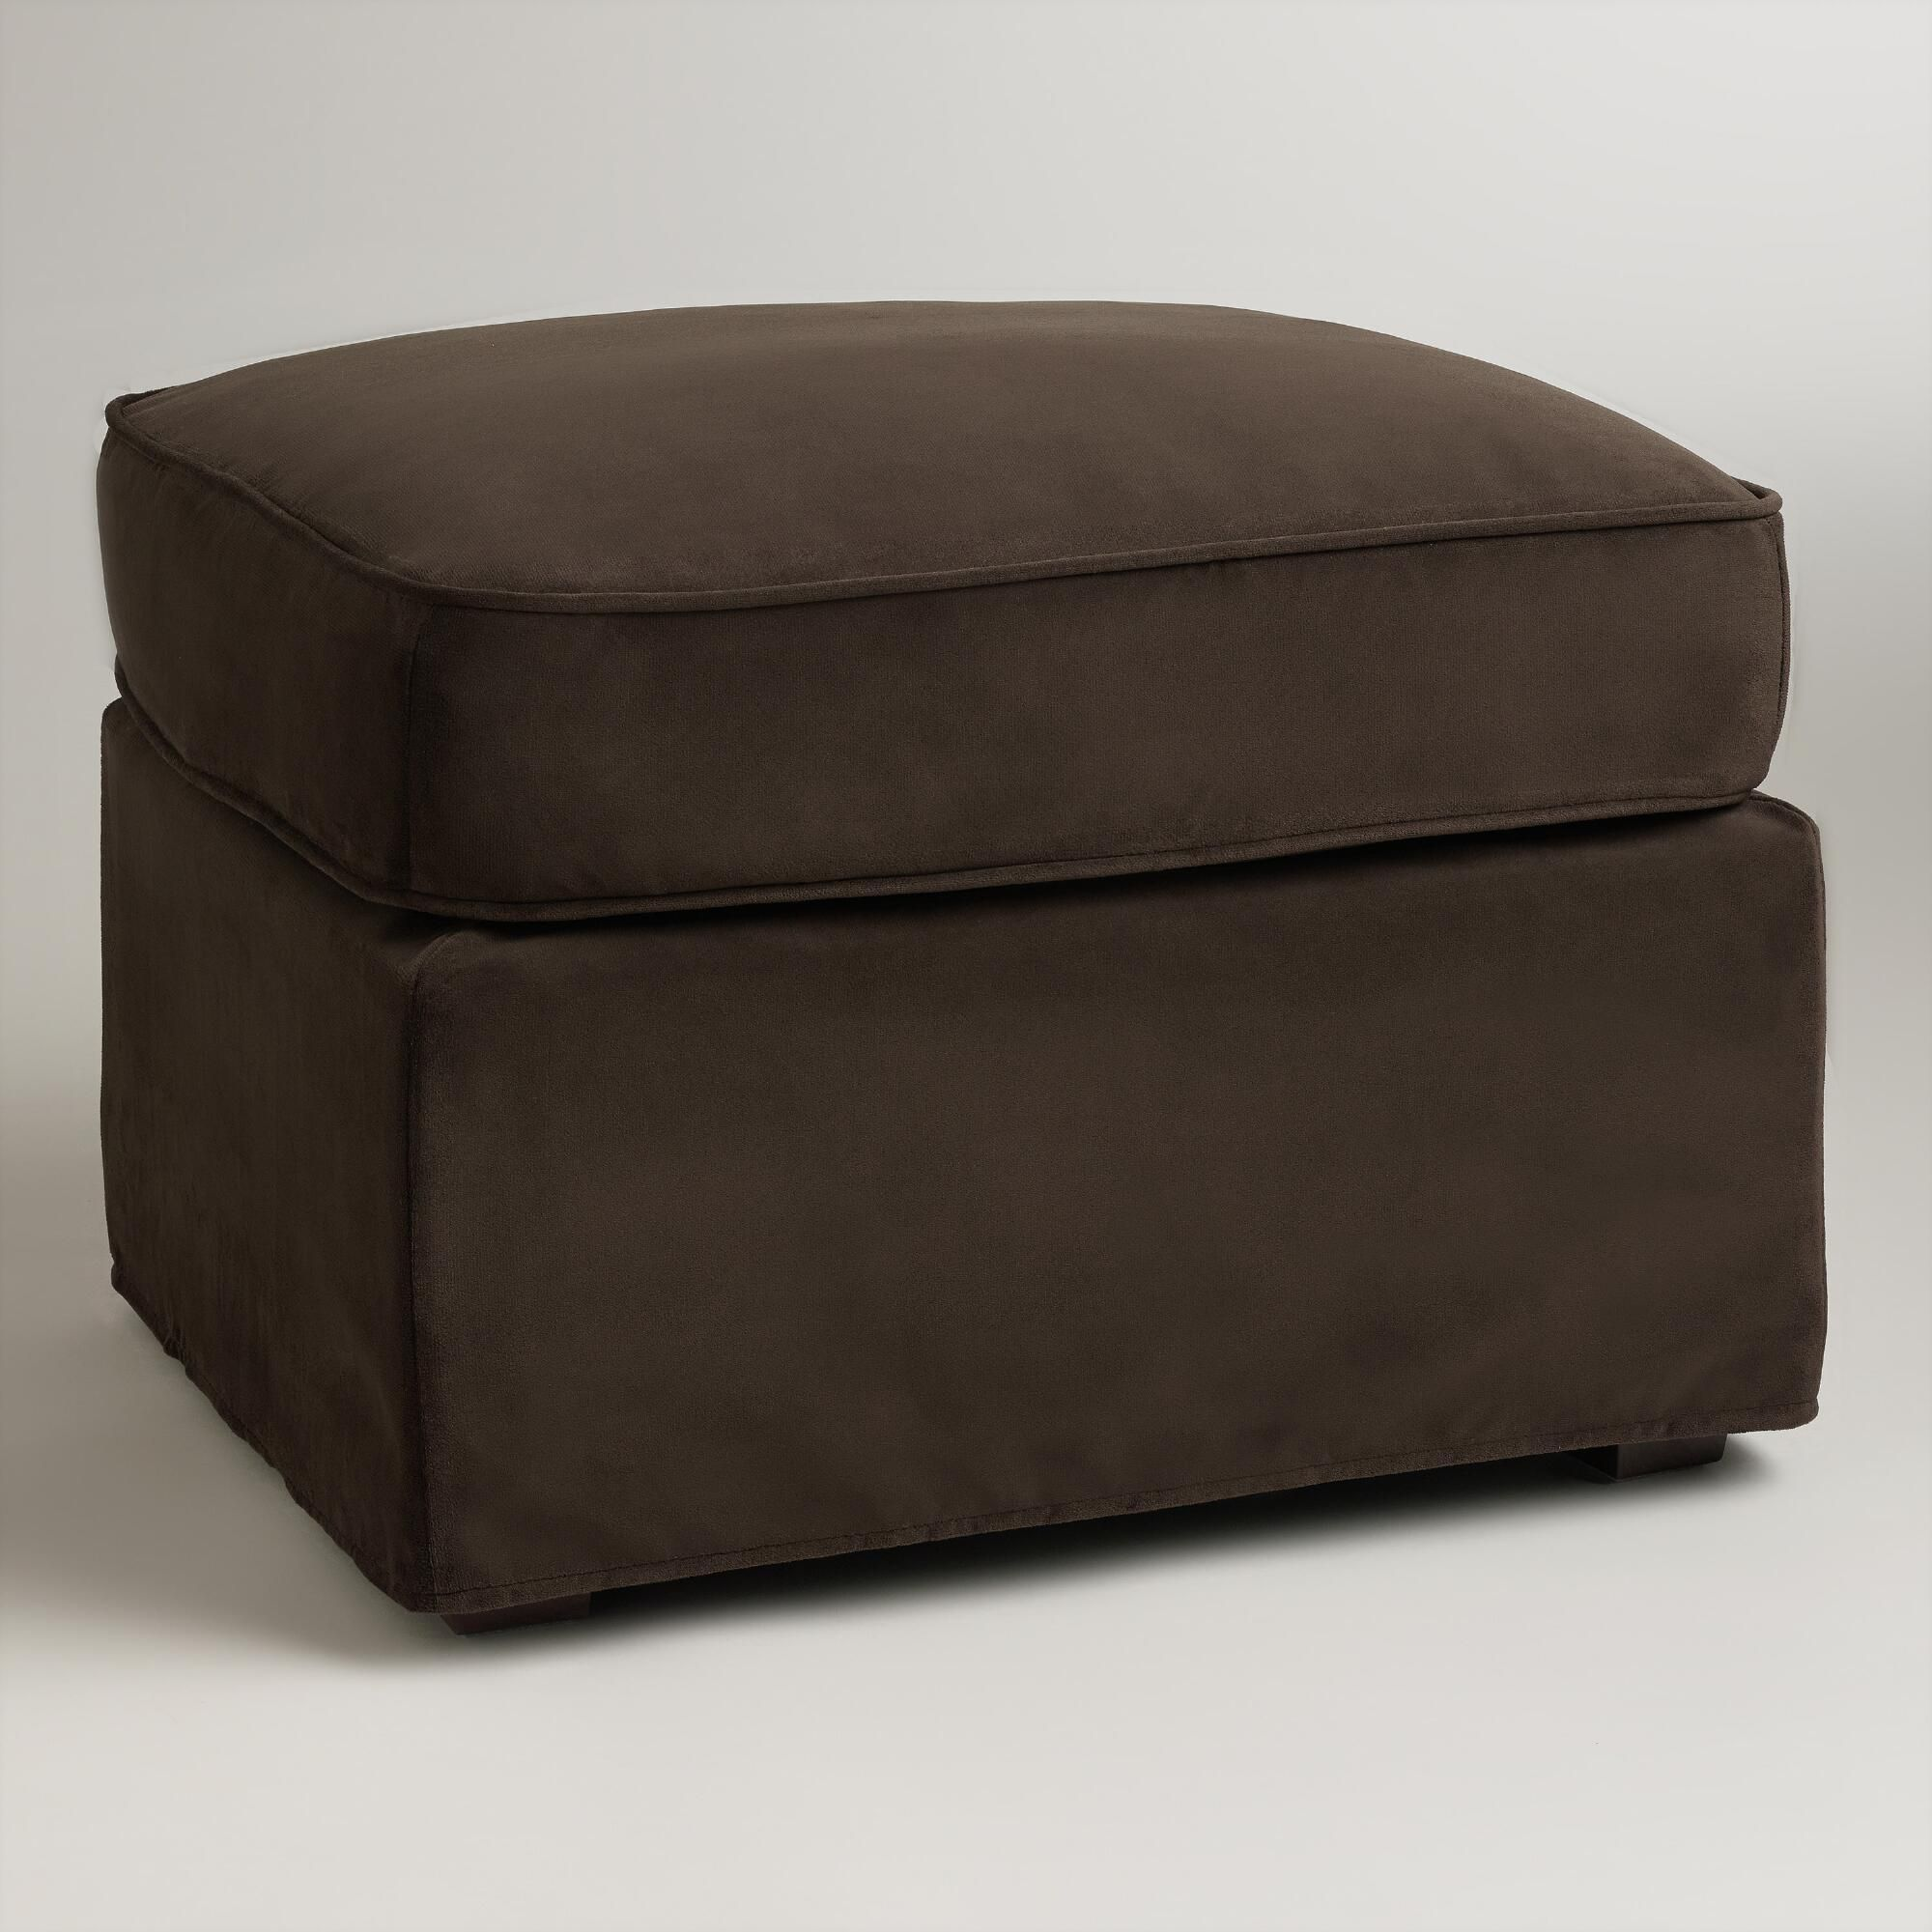 four seats for with tremendous storage state kohls contemporary cast picture bi slipcovers designs hokku missouri slipcover ottoman set of ideas ottomans patterns leather gray petula empire